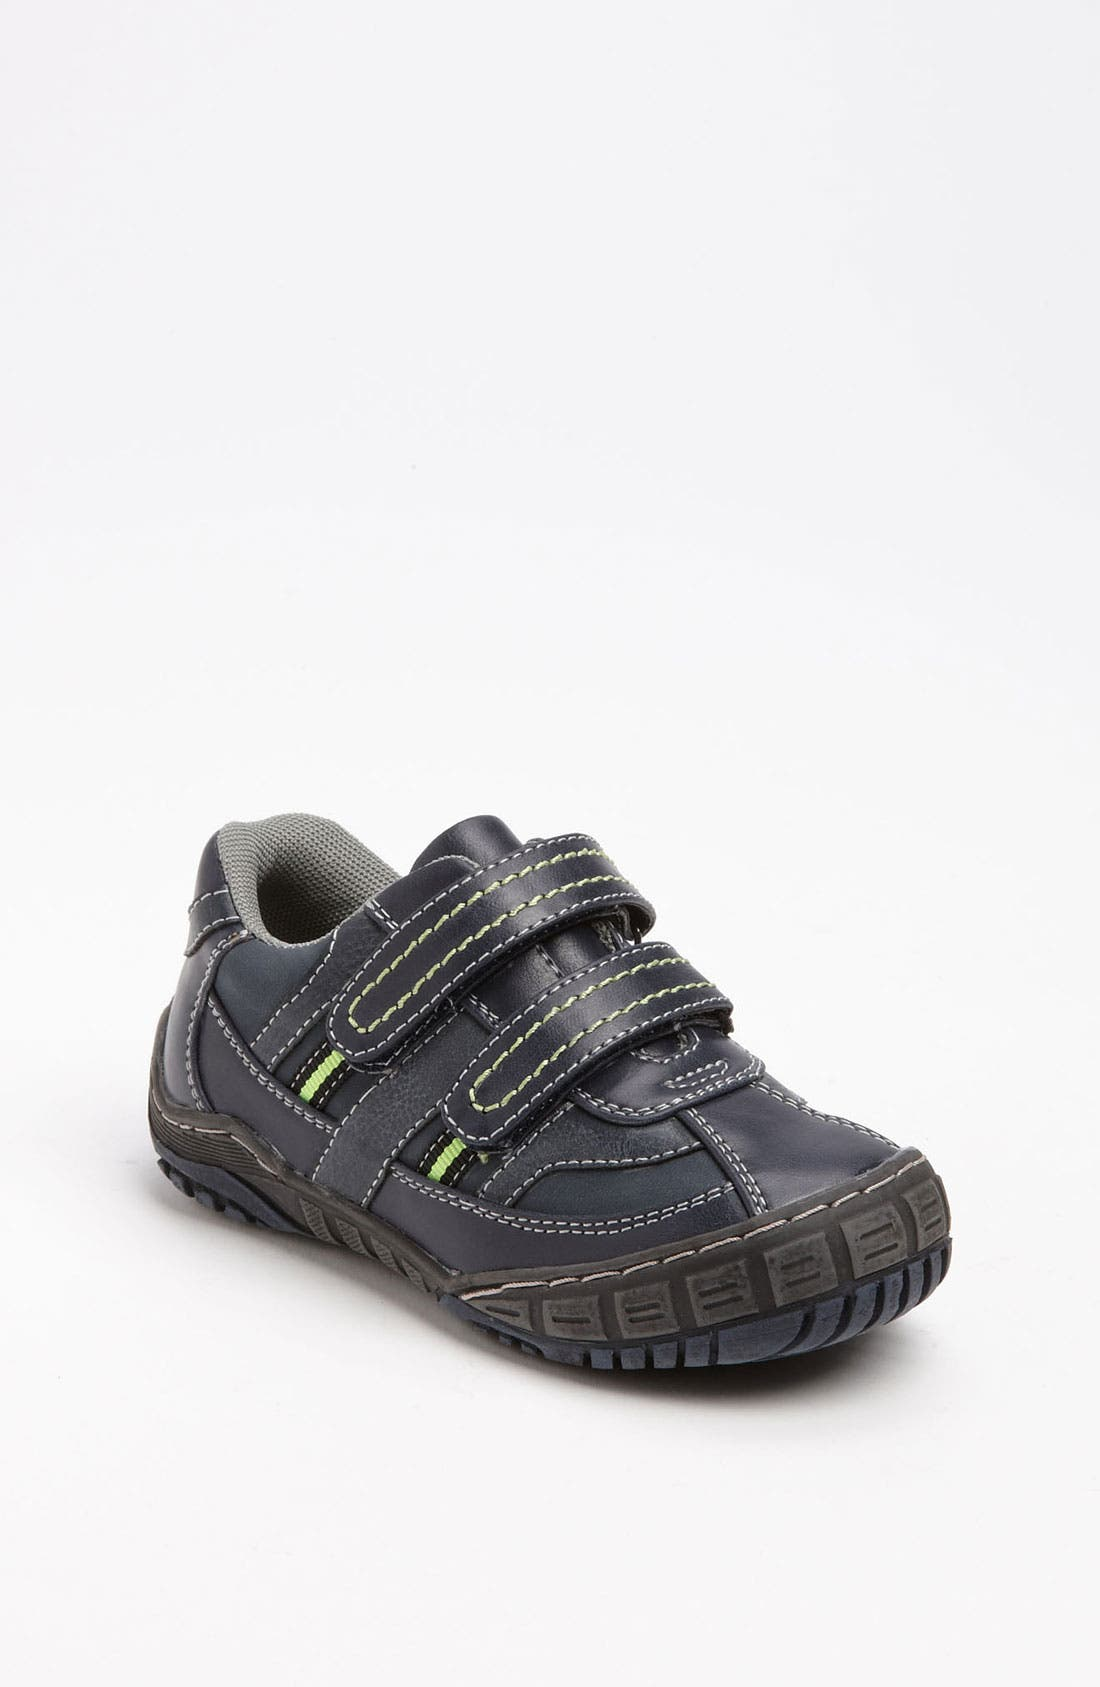 Alternate Image 1 Selected - Jumping Jacks 'Pal' Sneaker (Toddler & Little Kid)